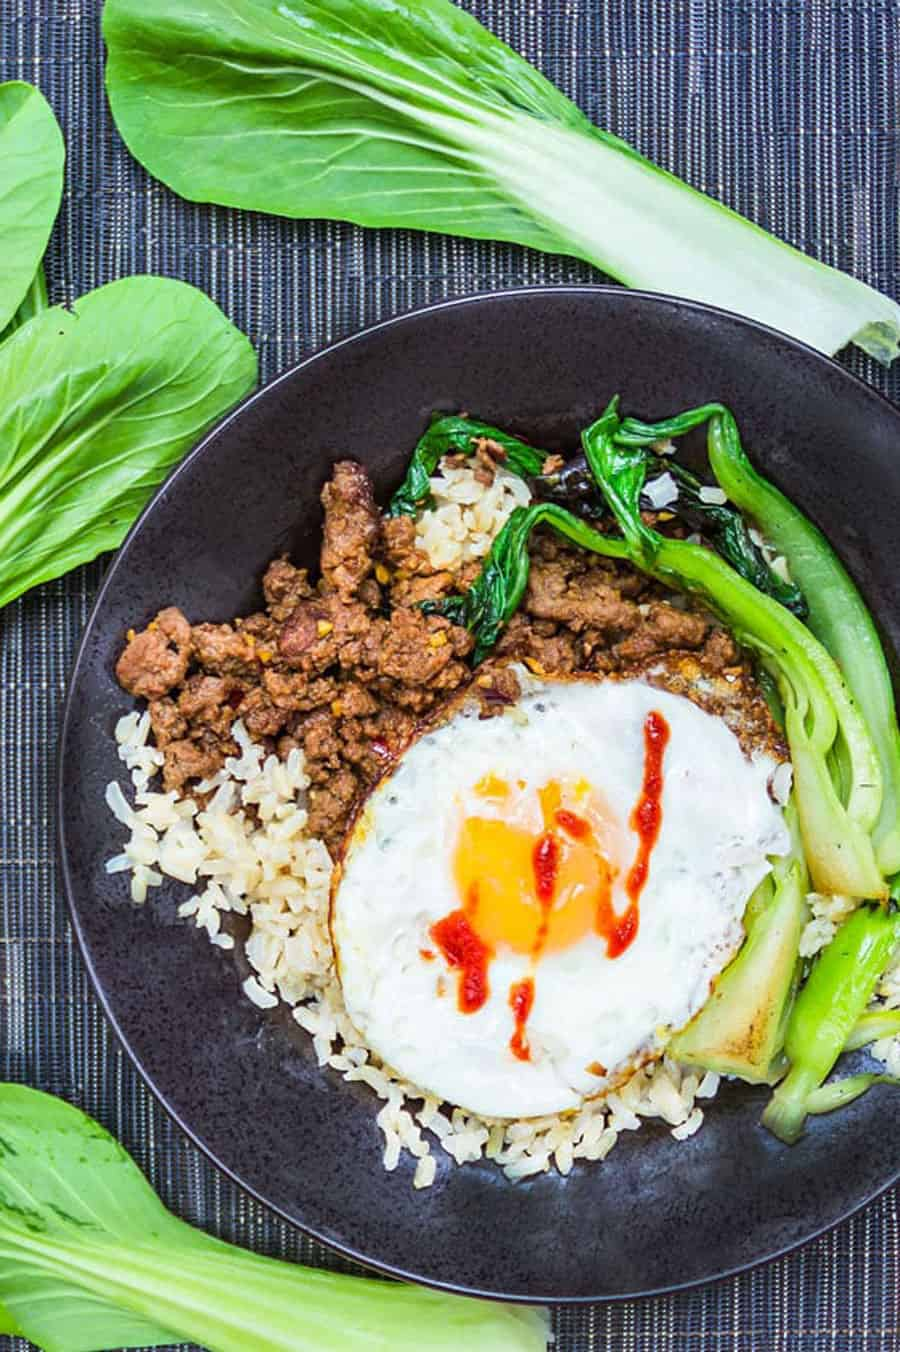 Thai Beef Rice Bowl in a shallow black bowl with stir-fried ground beef, brown rice, sautéed bok choy, and a fried egg on top. leaves of raw bok choy surround the plate.